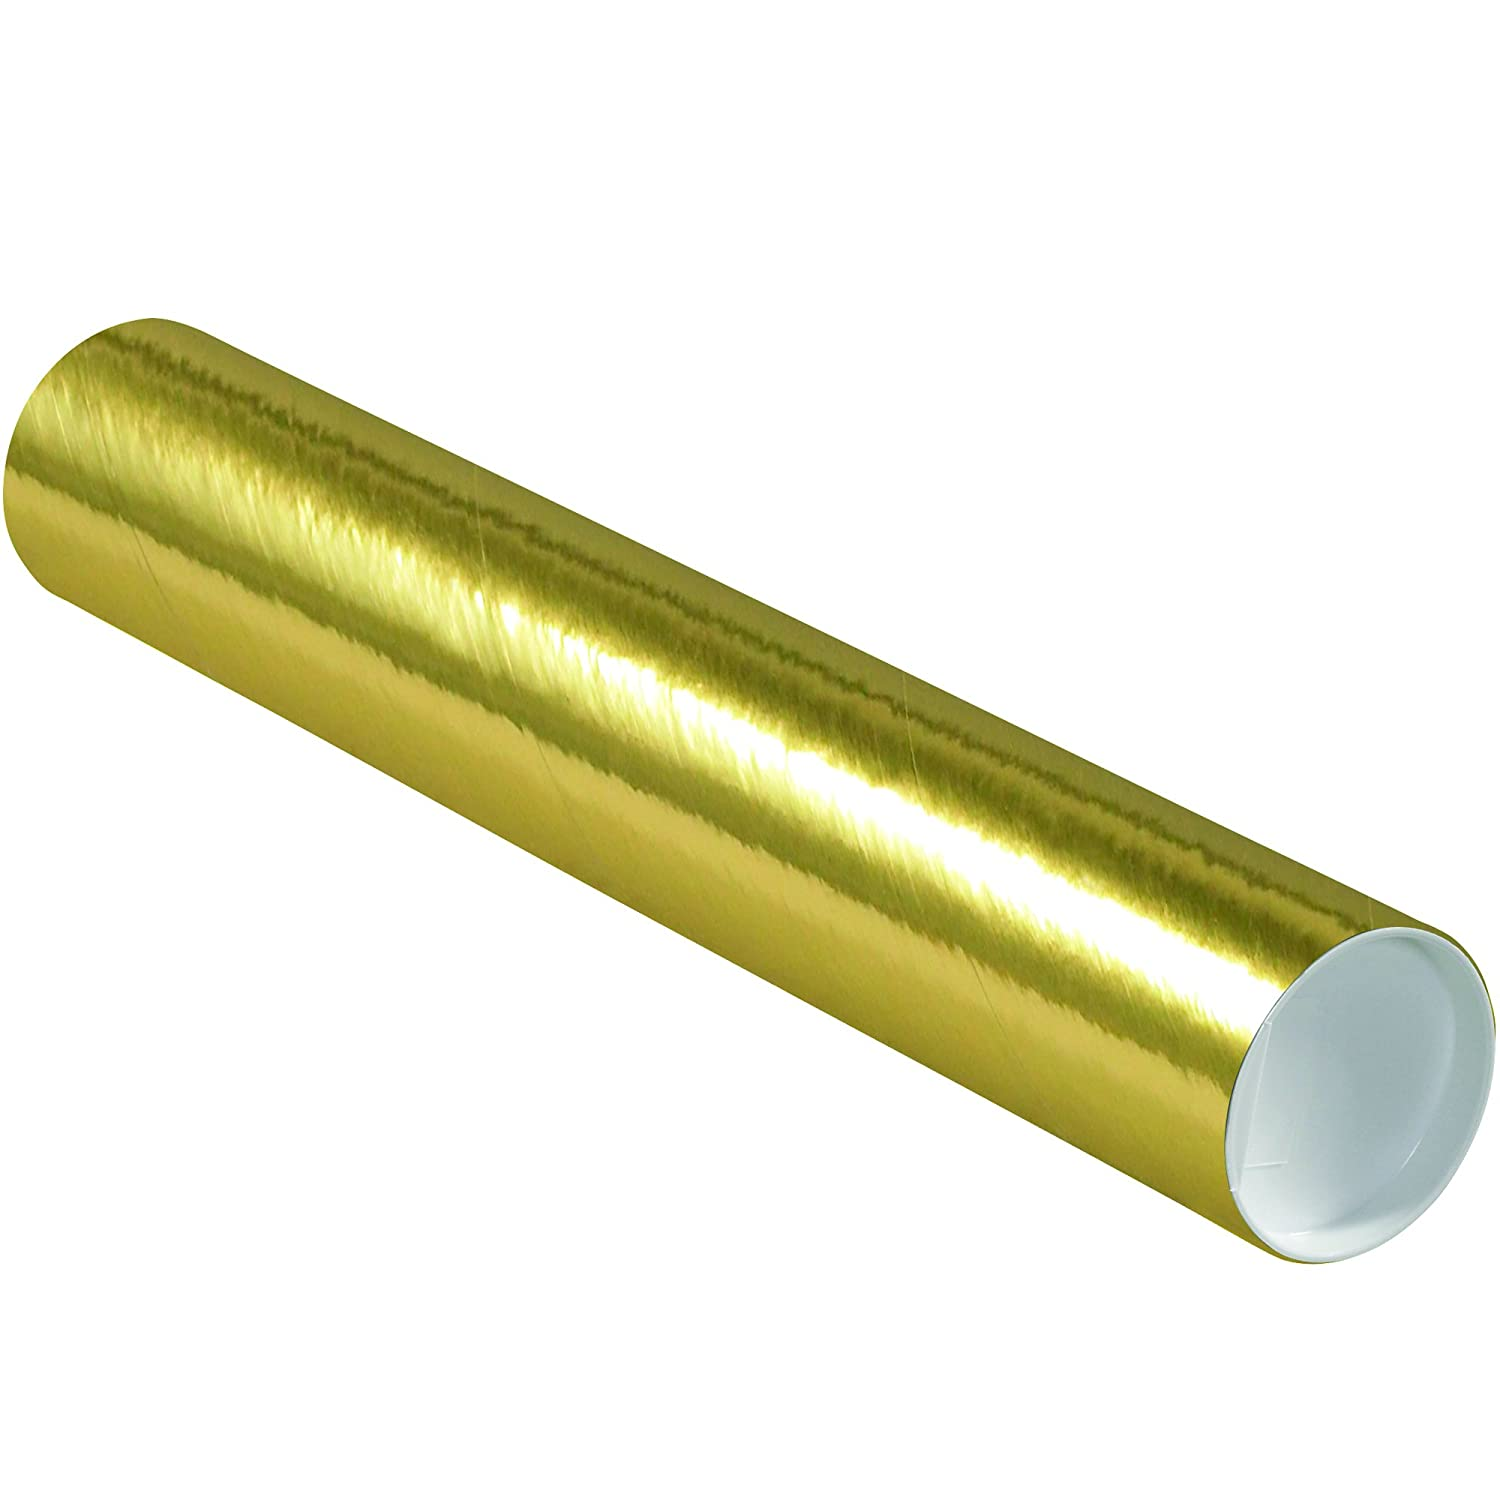 3 x 18 Box Partners Gold 3 x 18 Ship Now Supply SNP3018GO Mailing Tubes with Caps Pack of 24